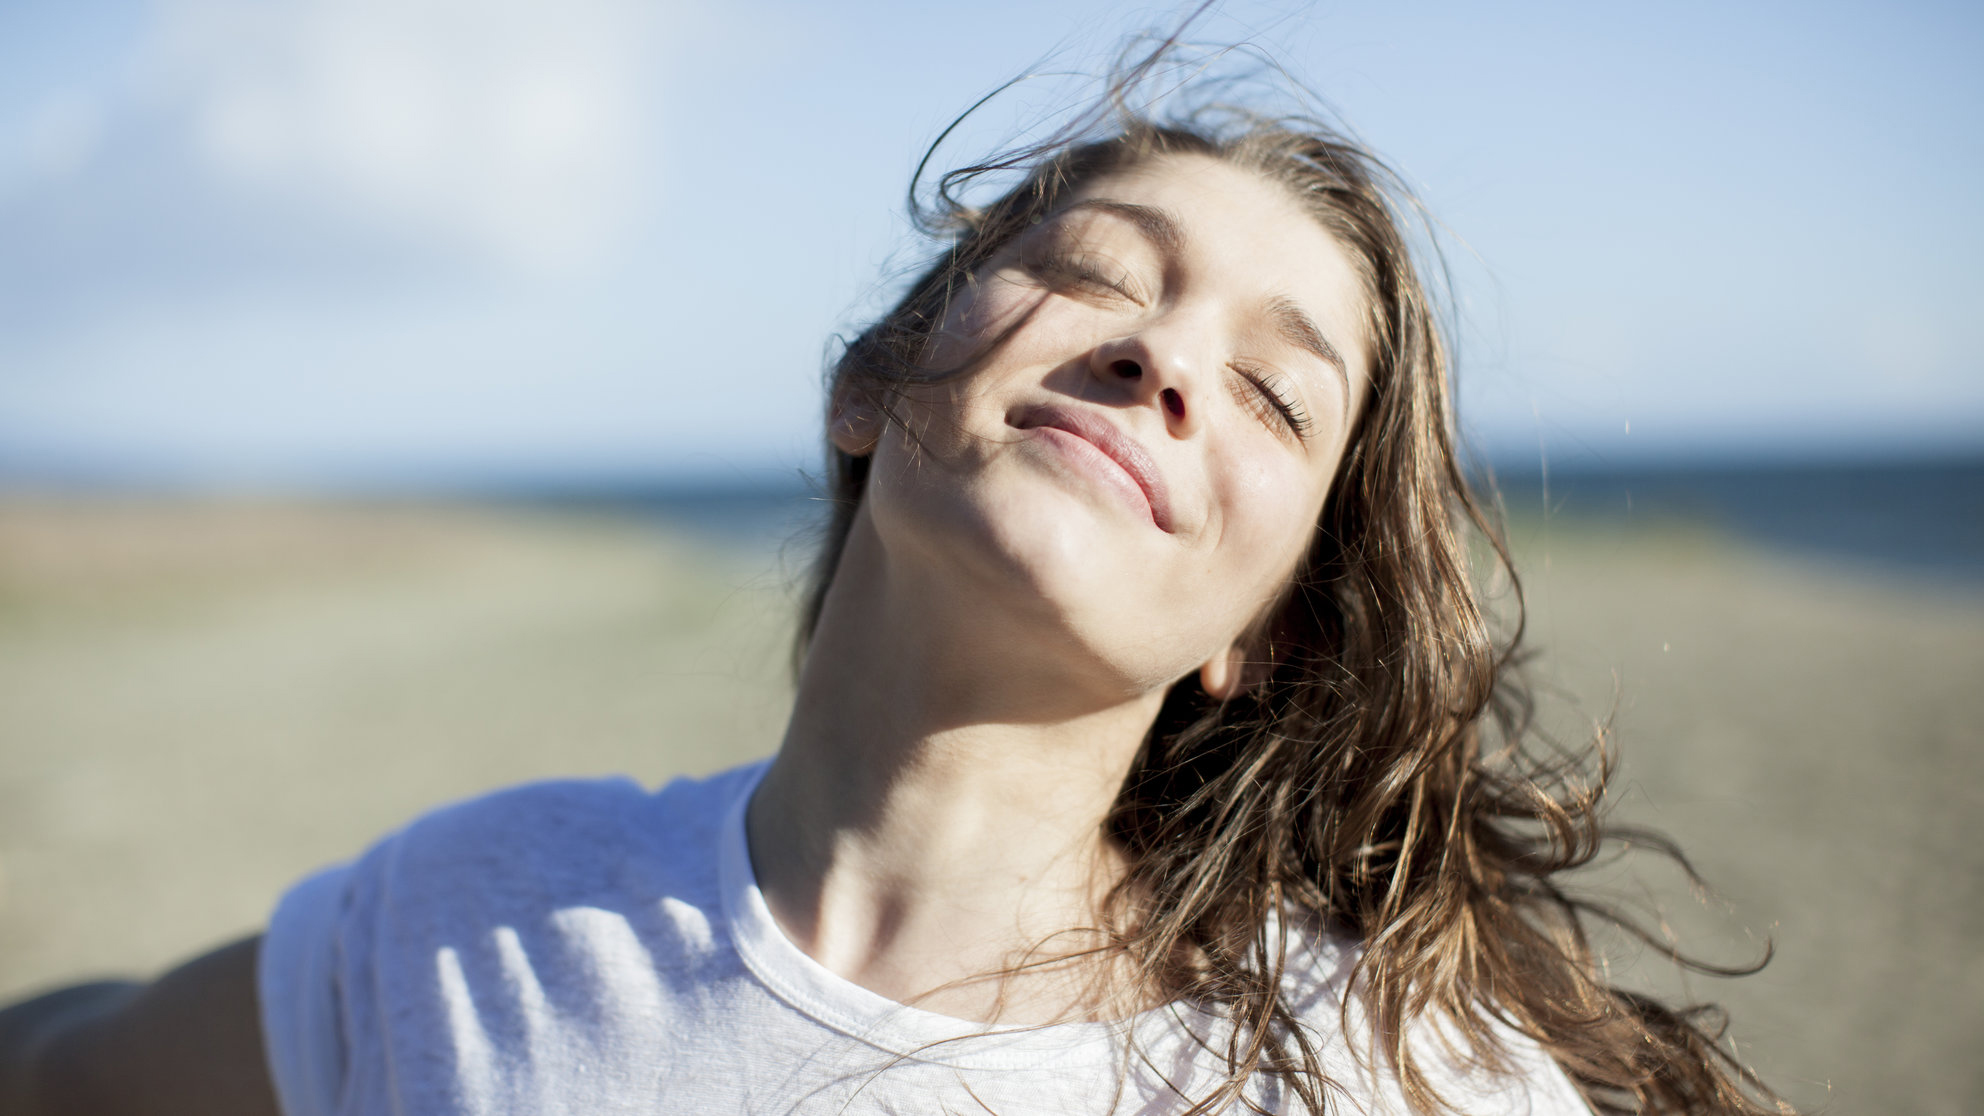 Young Girl Smiling in the Sun